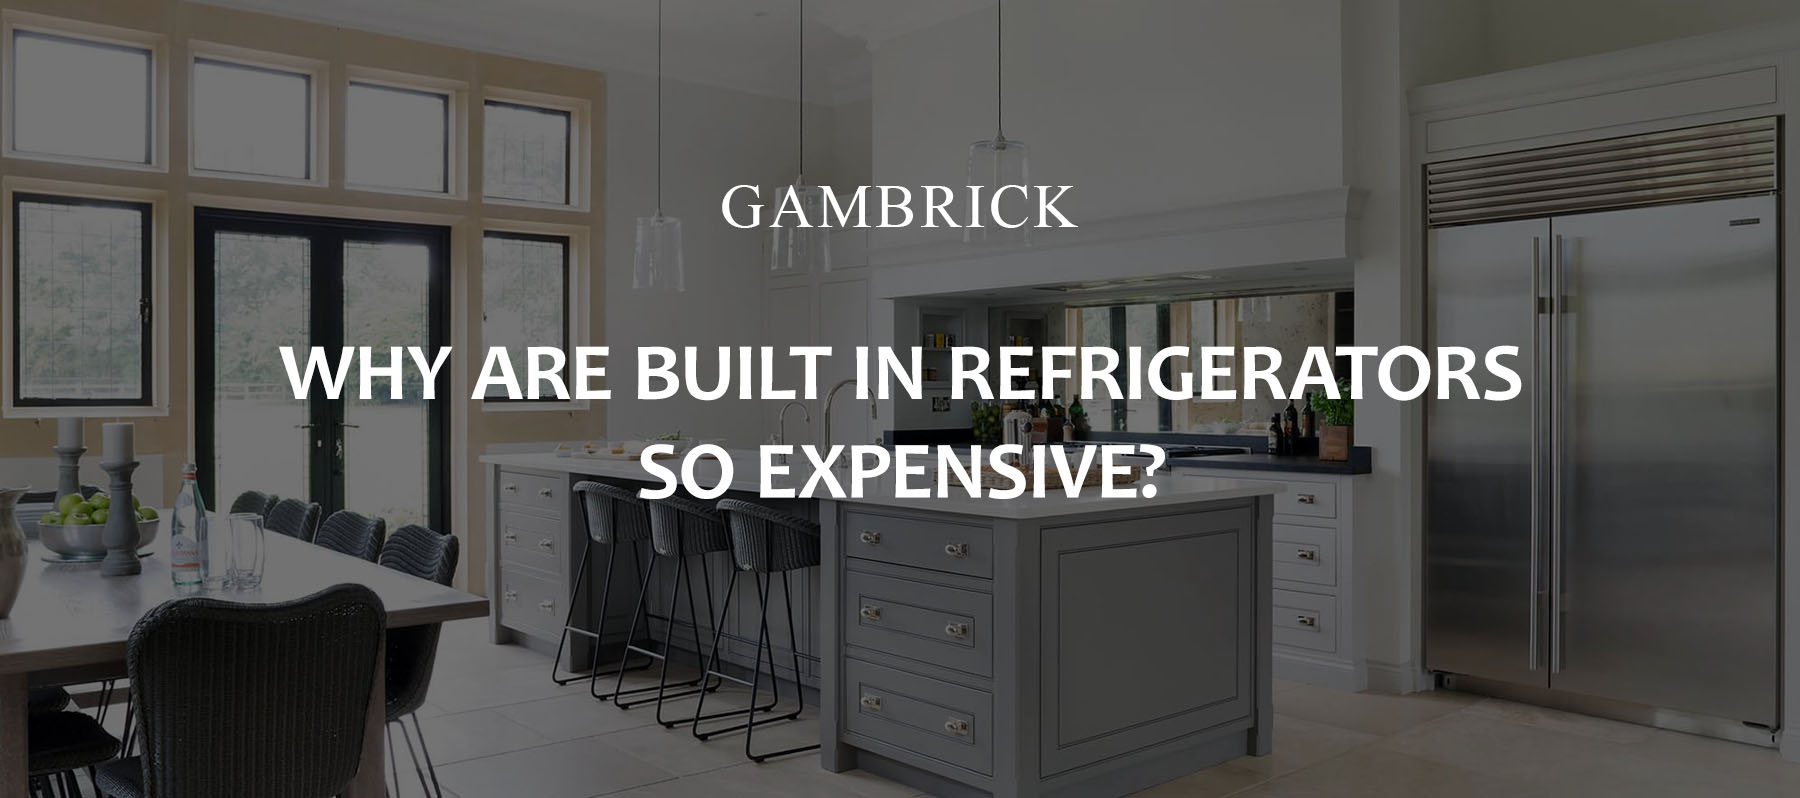 Why Are Built In Refrigerators So Expensive Gambrick